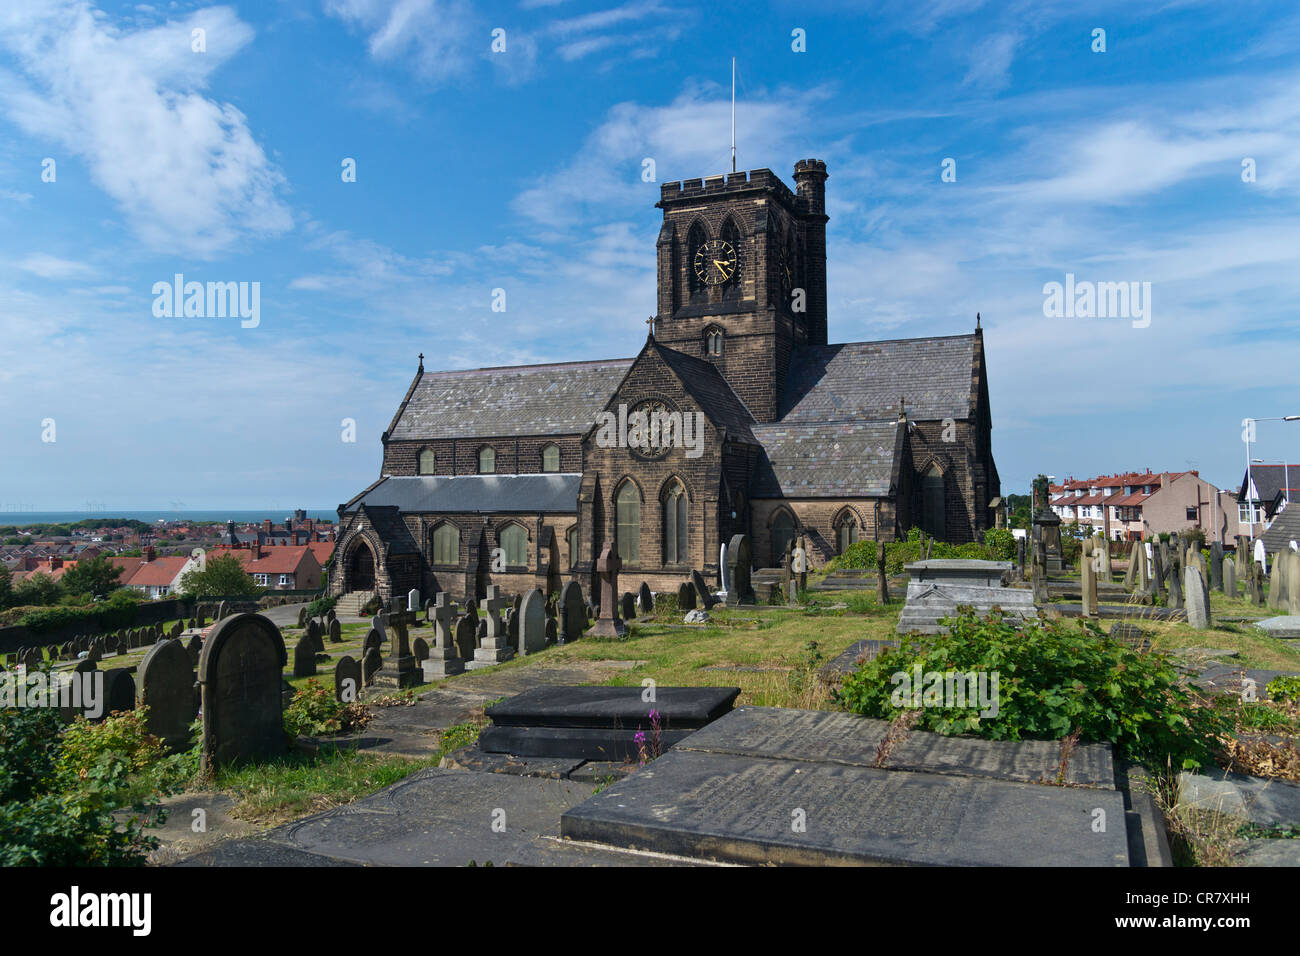 St Hilary's Church, Wallasey is in the town of Wallasey, Wirral, England. - Stock Image